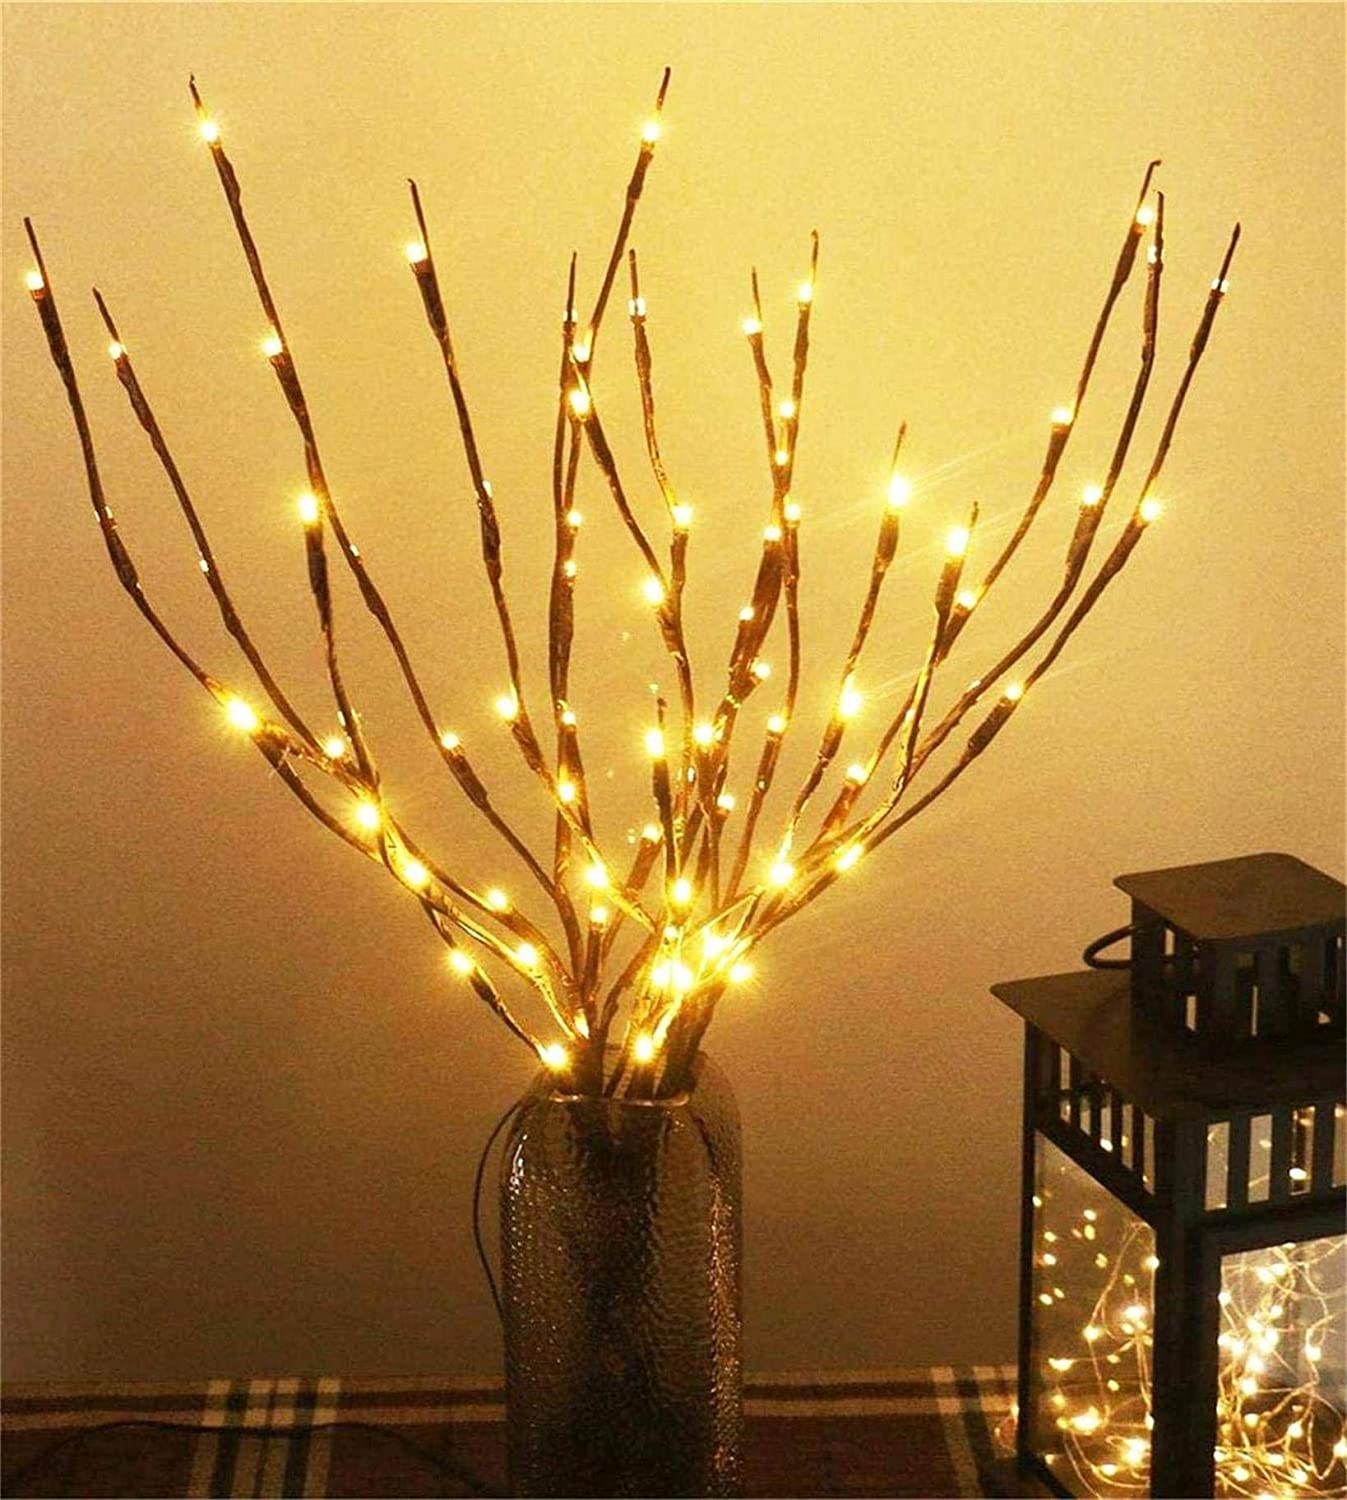 AMARS 3 Pack Lighted Branches with Timer Battery Powered 8 Modes Decorative LED Twig Branch Lights Home Decoration for Living Room Floor Vase Christmas (29inch, 60leds, Auto 6H ON/18H Off, Warm White)